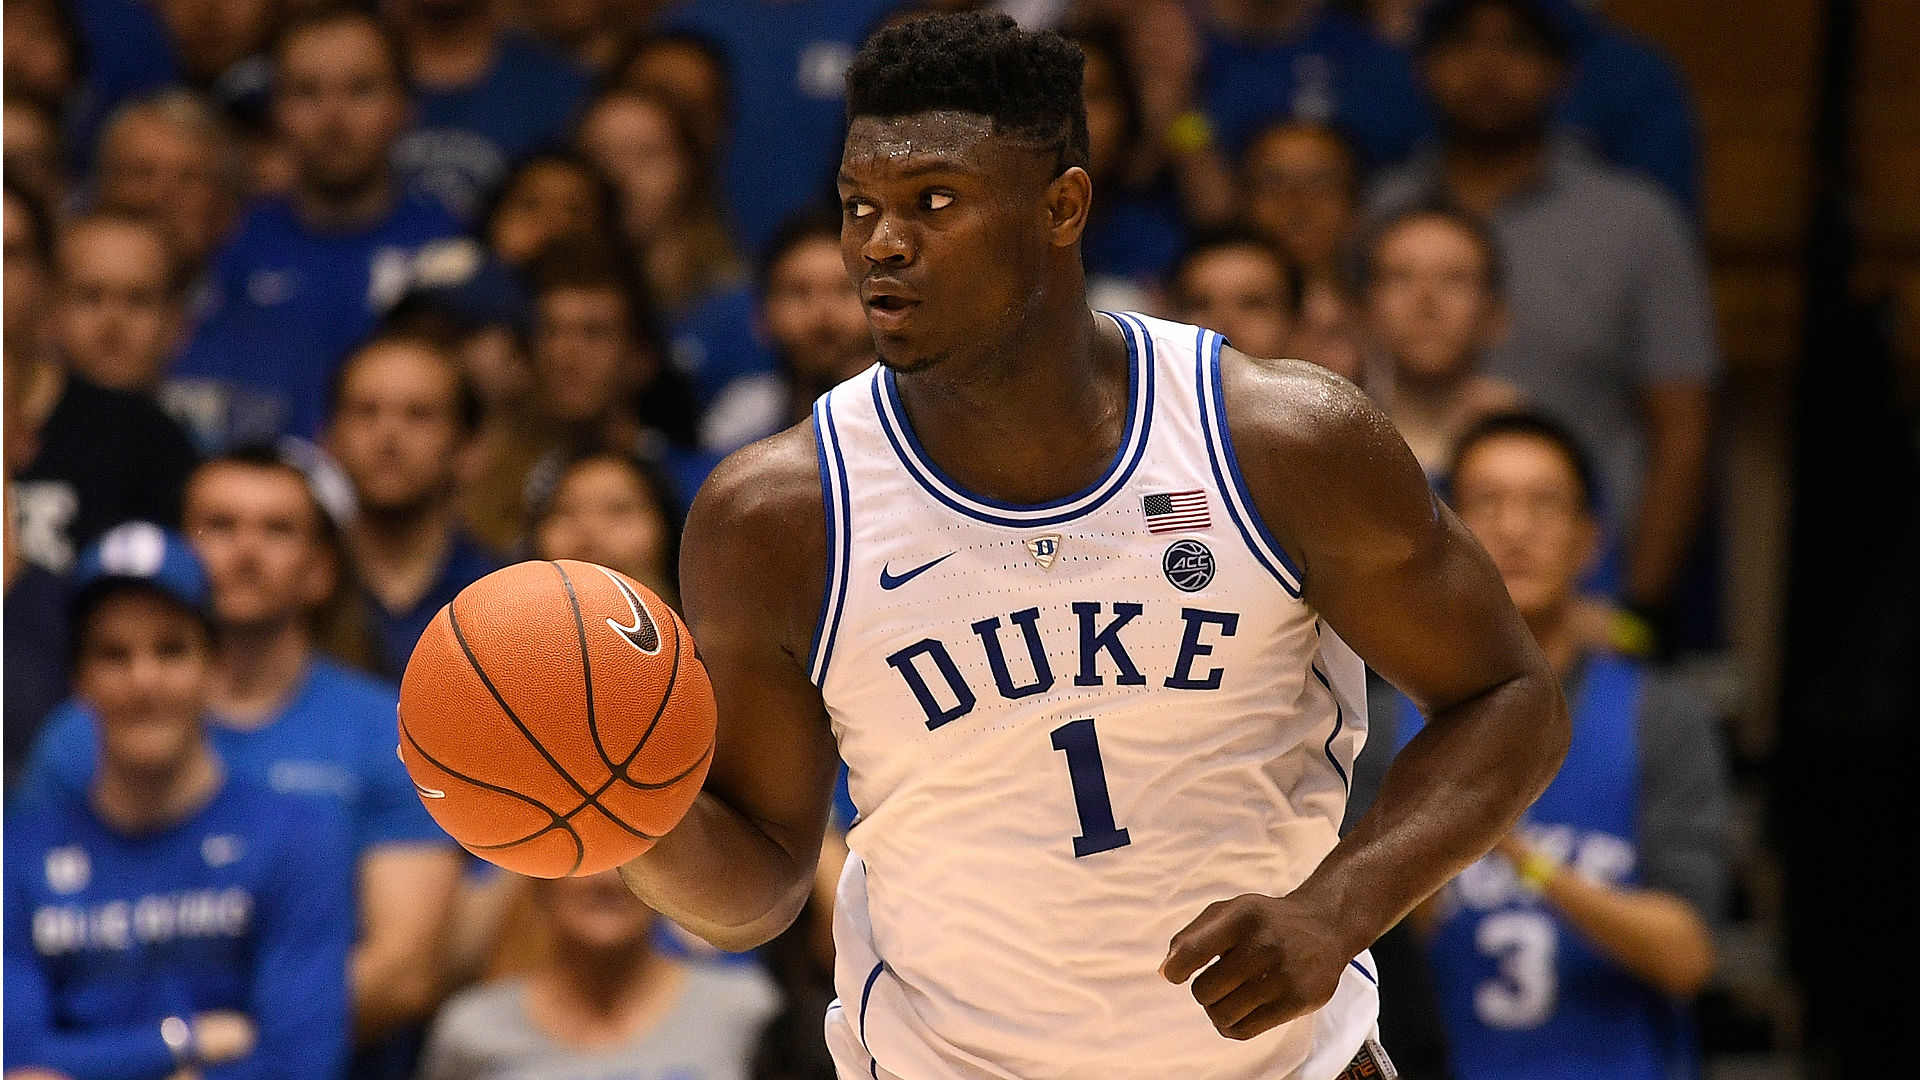 Zion-Williamson-USNews-021819-ftr-getty